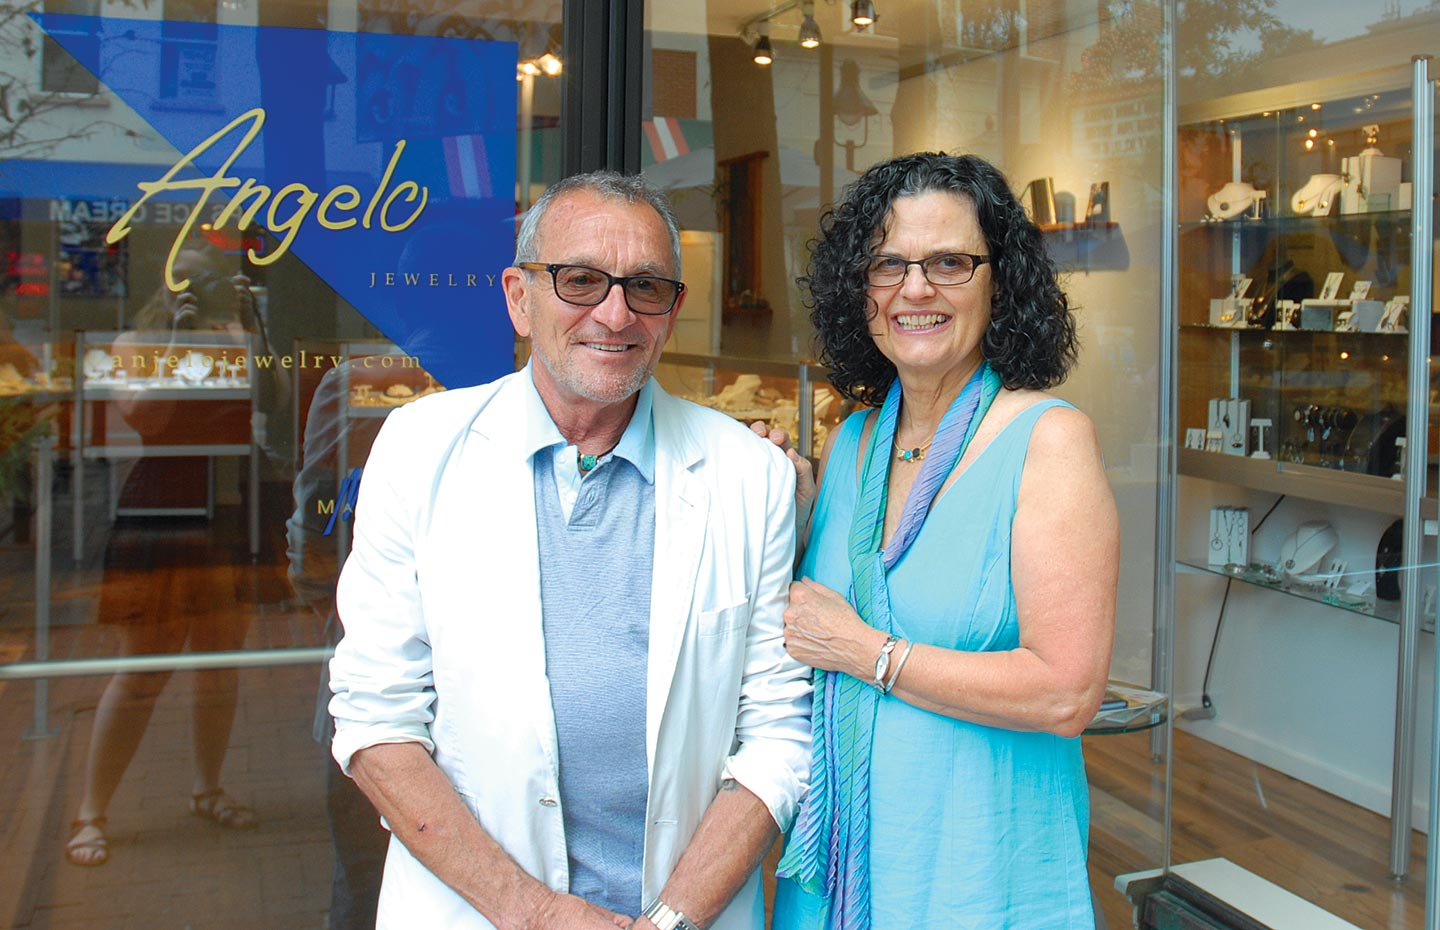 LEE MARRACCINI AND PAM PERUGI MARRACCINI standing in front of their store, Angelo Jewelry.